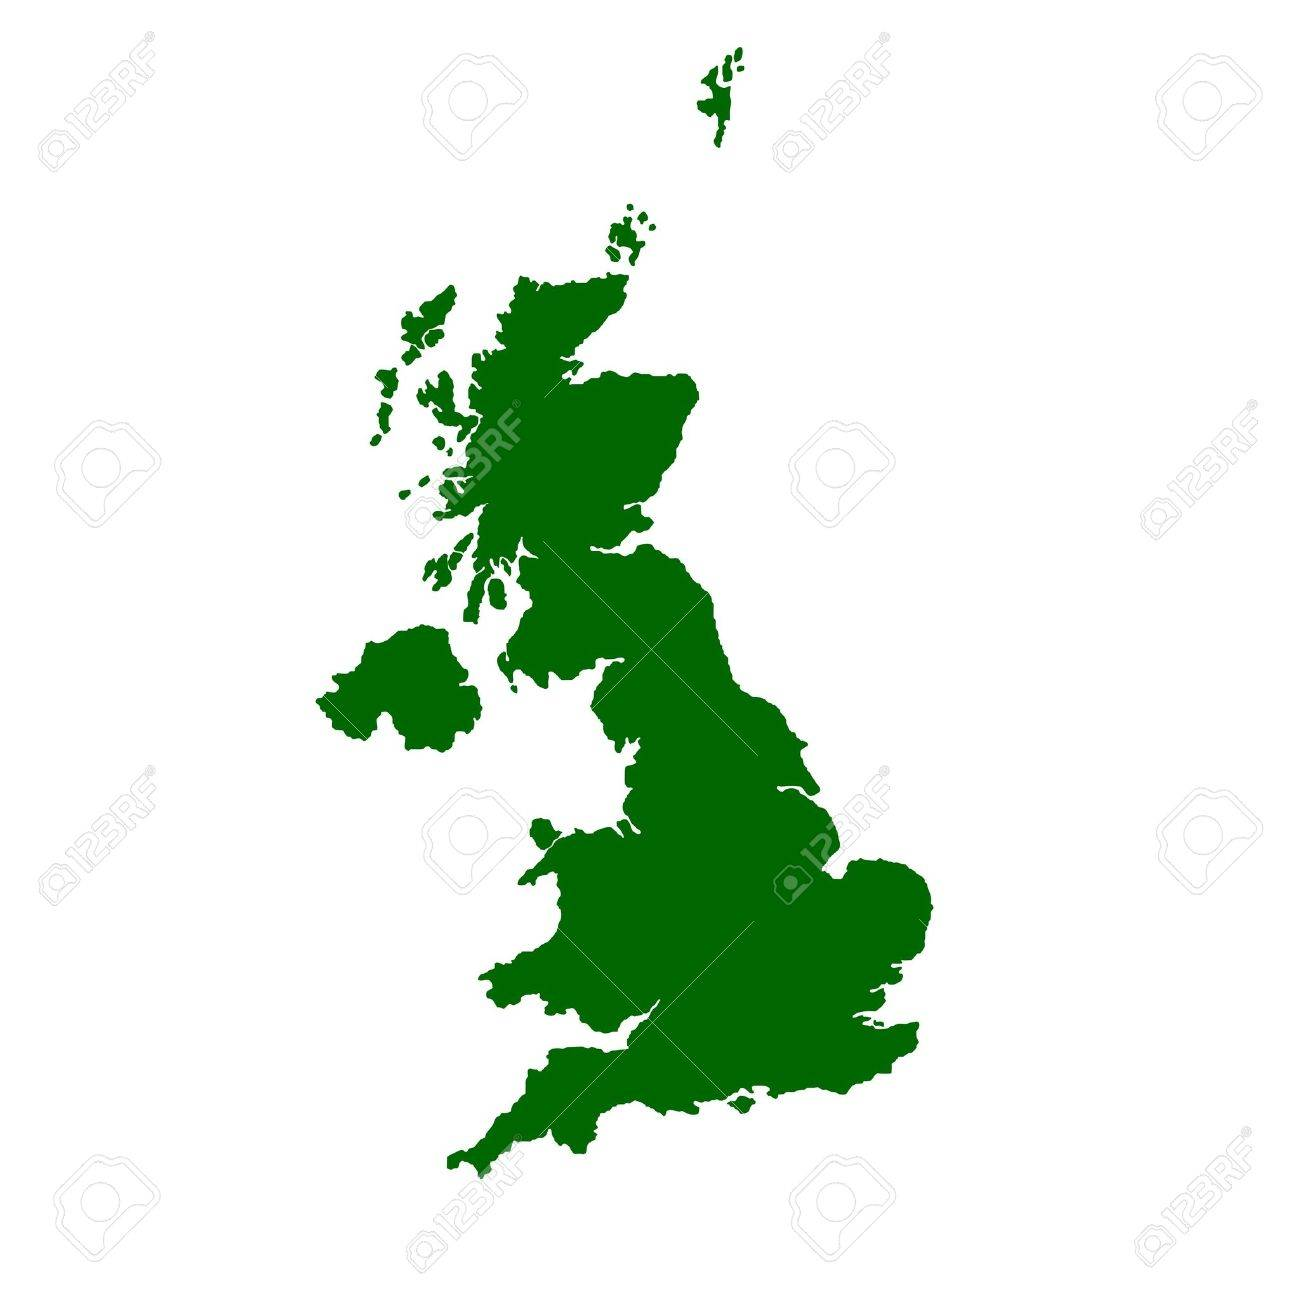 Map Of England Ireland Scotland Wales.Isolated Map Of United Kingdom Of England Scotland Wales And